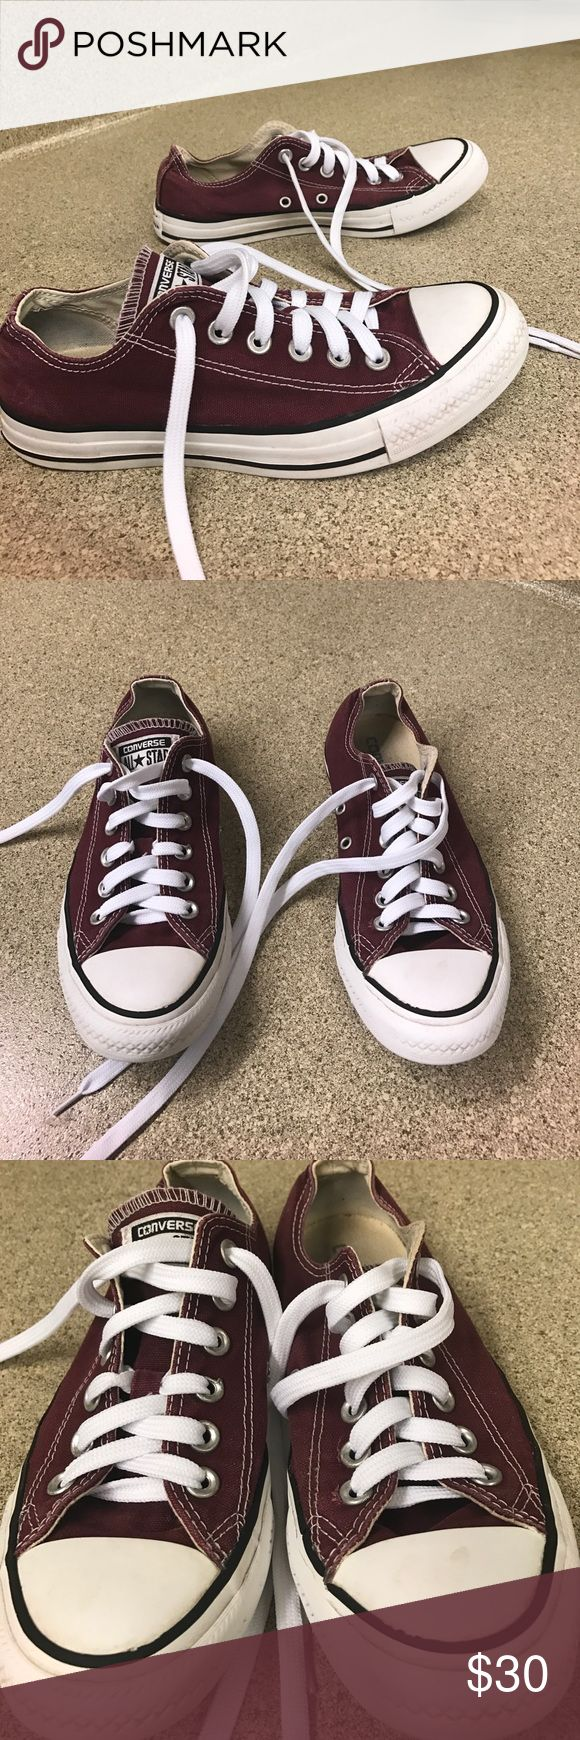 "Maroon converse Chuck Taylor's Maroon ""worn"" converse Chuck Taylor's men's size 5 women's size 7. Washed, air dried, and new shoe laces. I will ship out old laces if wanted but I didn't clean those. Clean smoke free home. Please make a reasonable offer. Some signs of wear but very unnoticeable I couldn't get a good picture of on the shoes. Rippling rubber and signs on back of shoes shown in pictures above. Any questions please ask. Converse Shoes Sneakers"